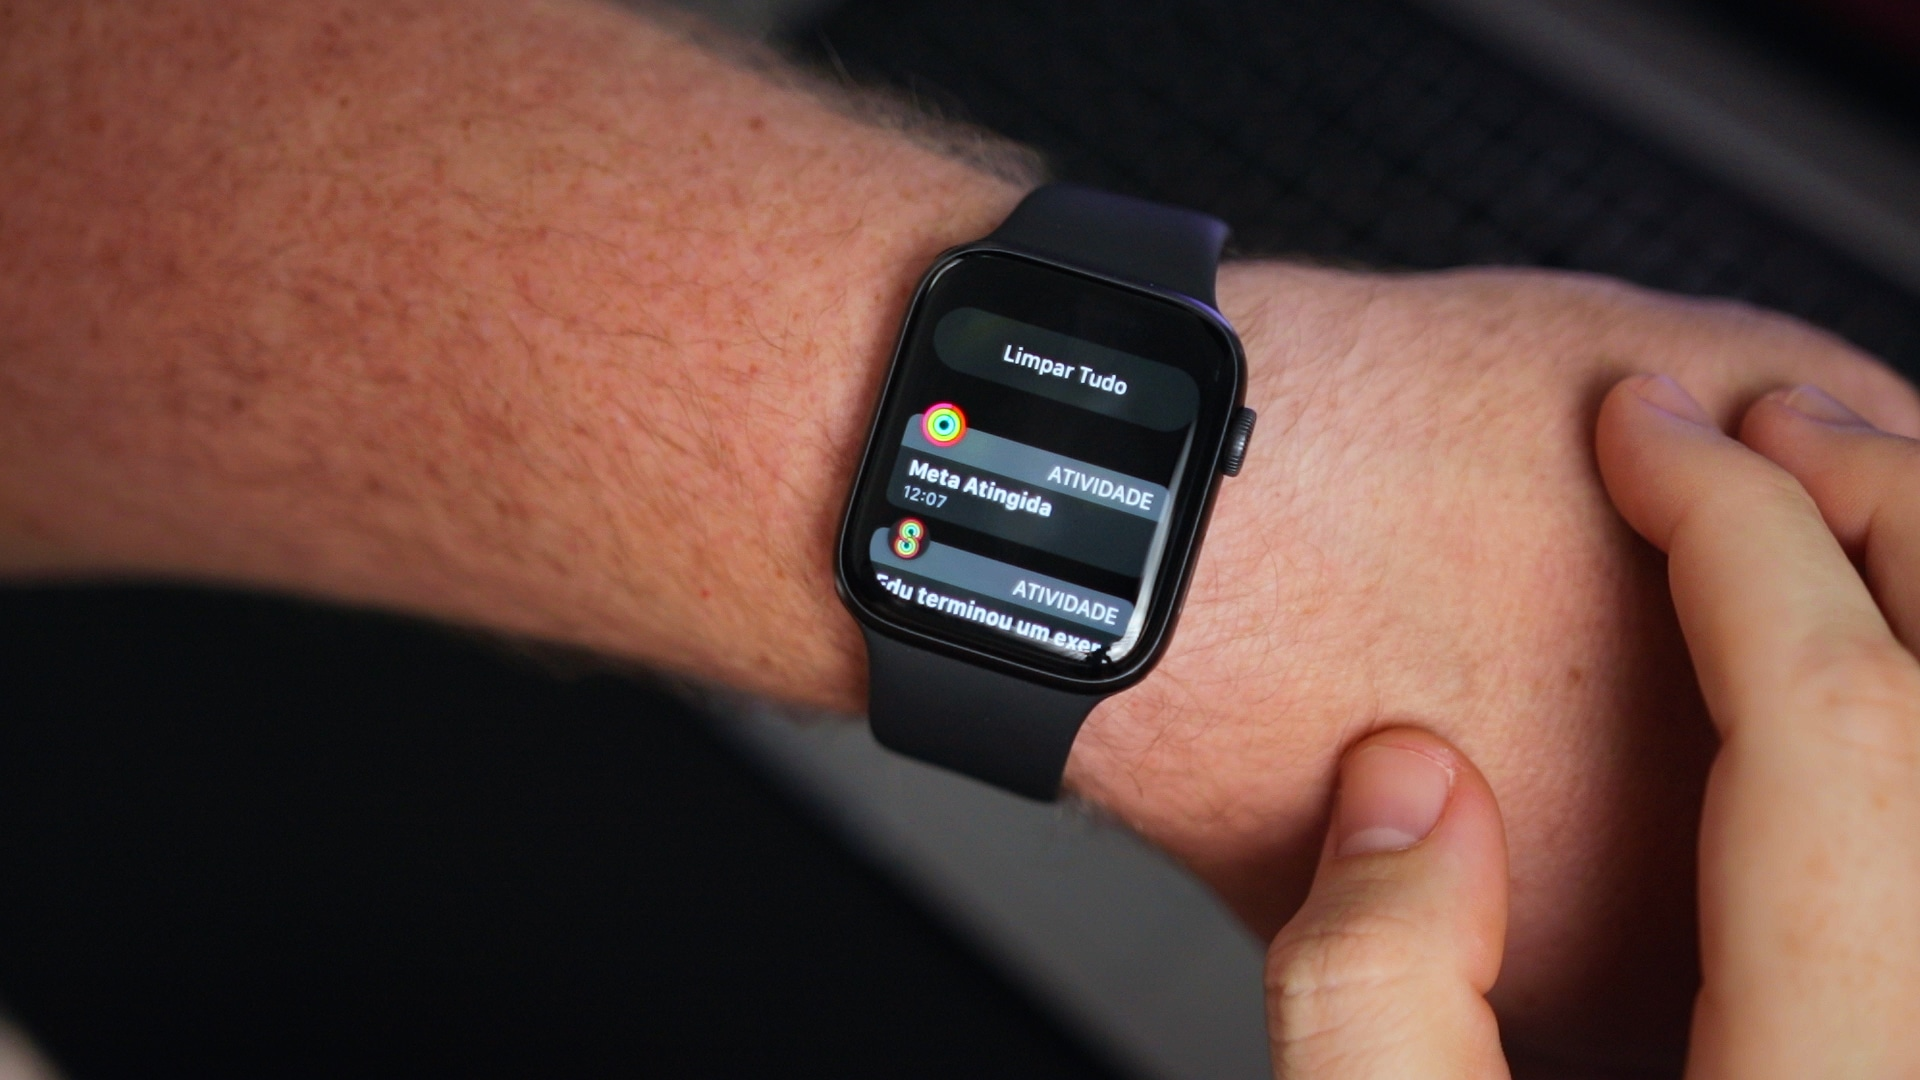 Vídeo: a Apple matou o Force Touch no watchOS 7